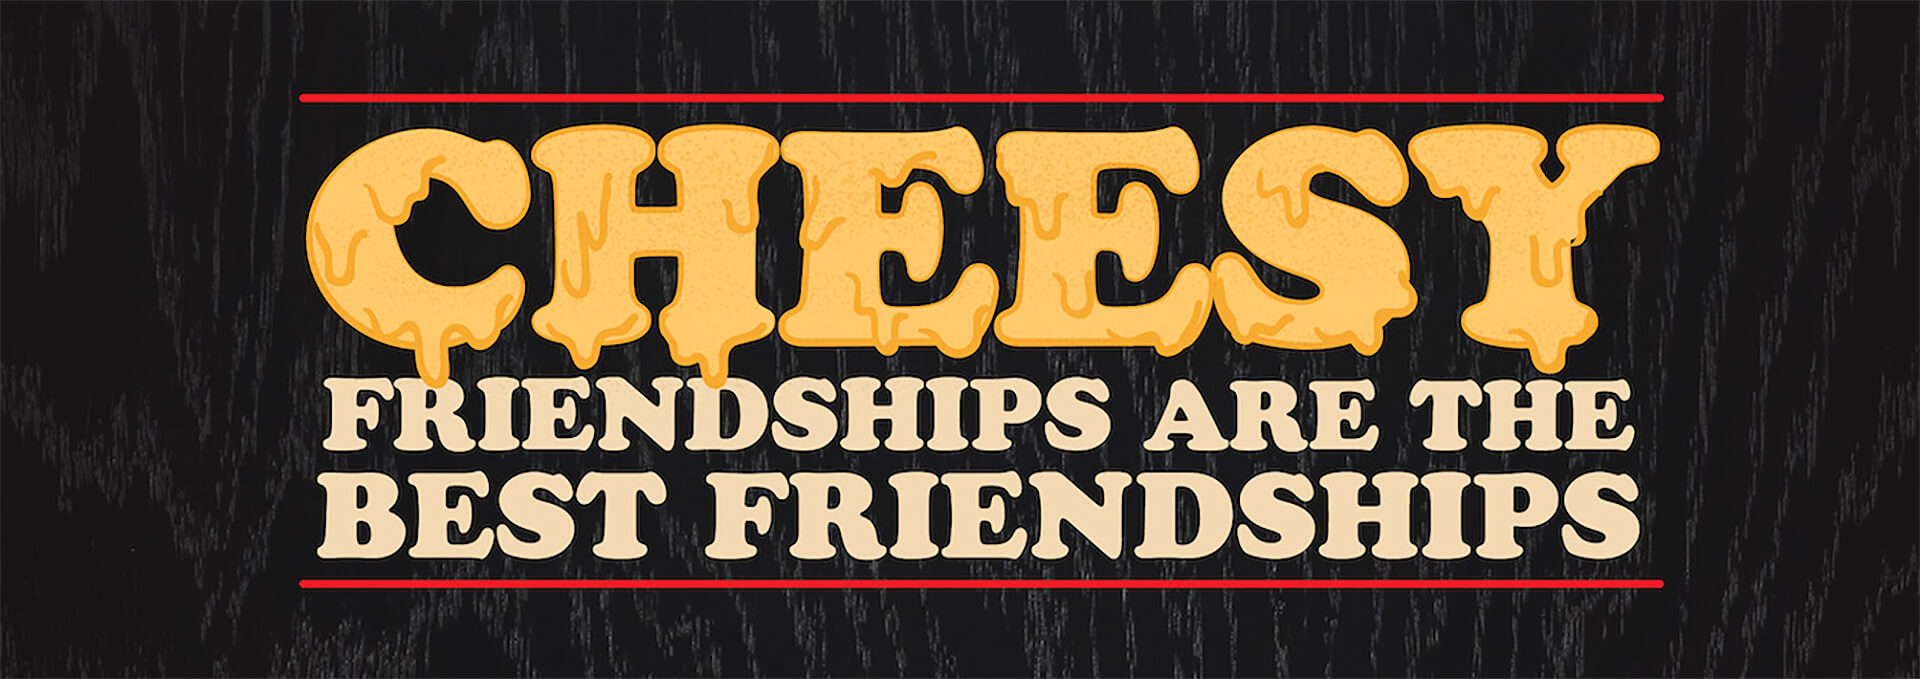 Pizza Inn - cheesy friendships are the best friendships